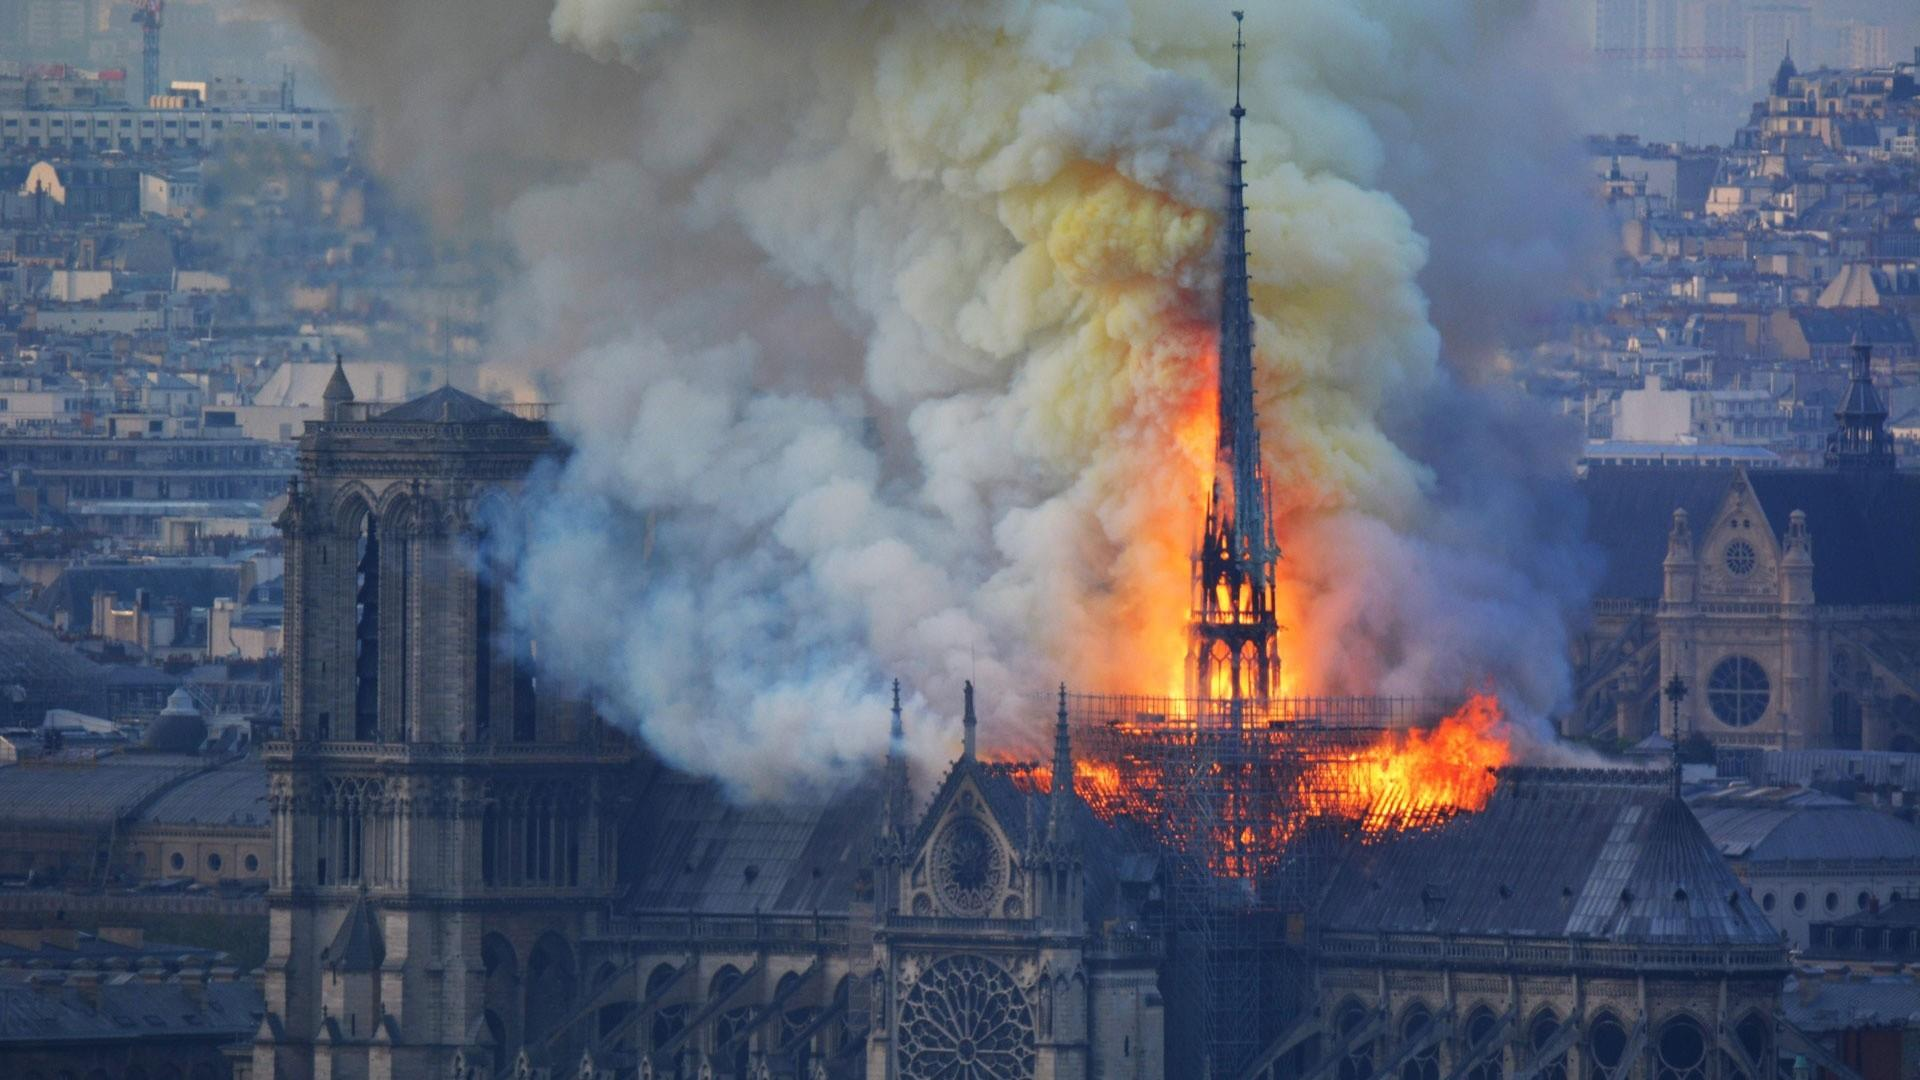 Bishop Barron on Notre Dame fire: To think it might be destroyed is overwhelming